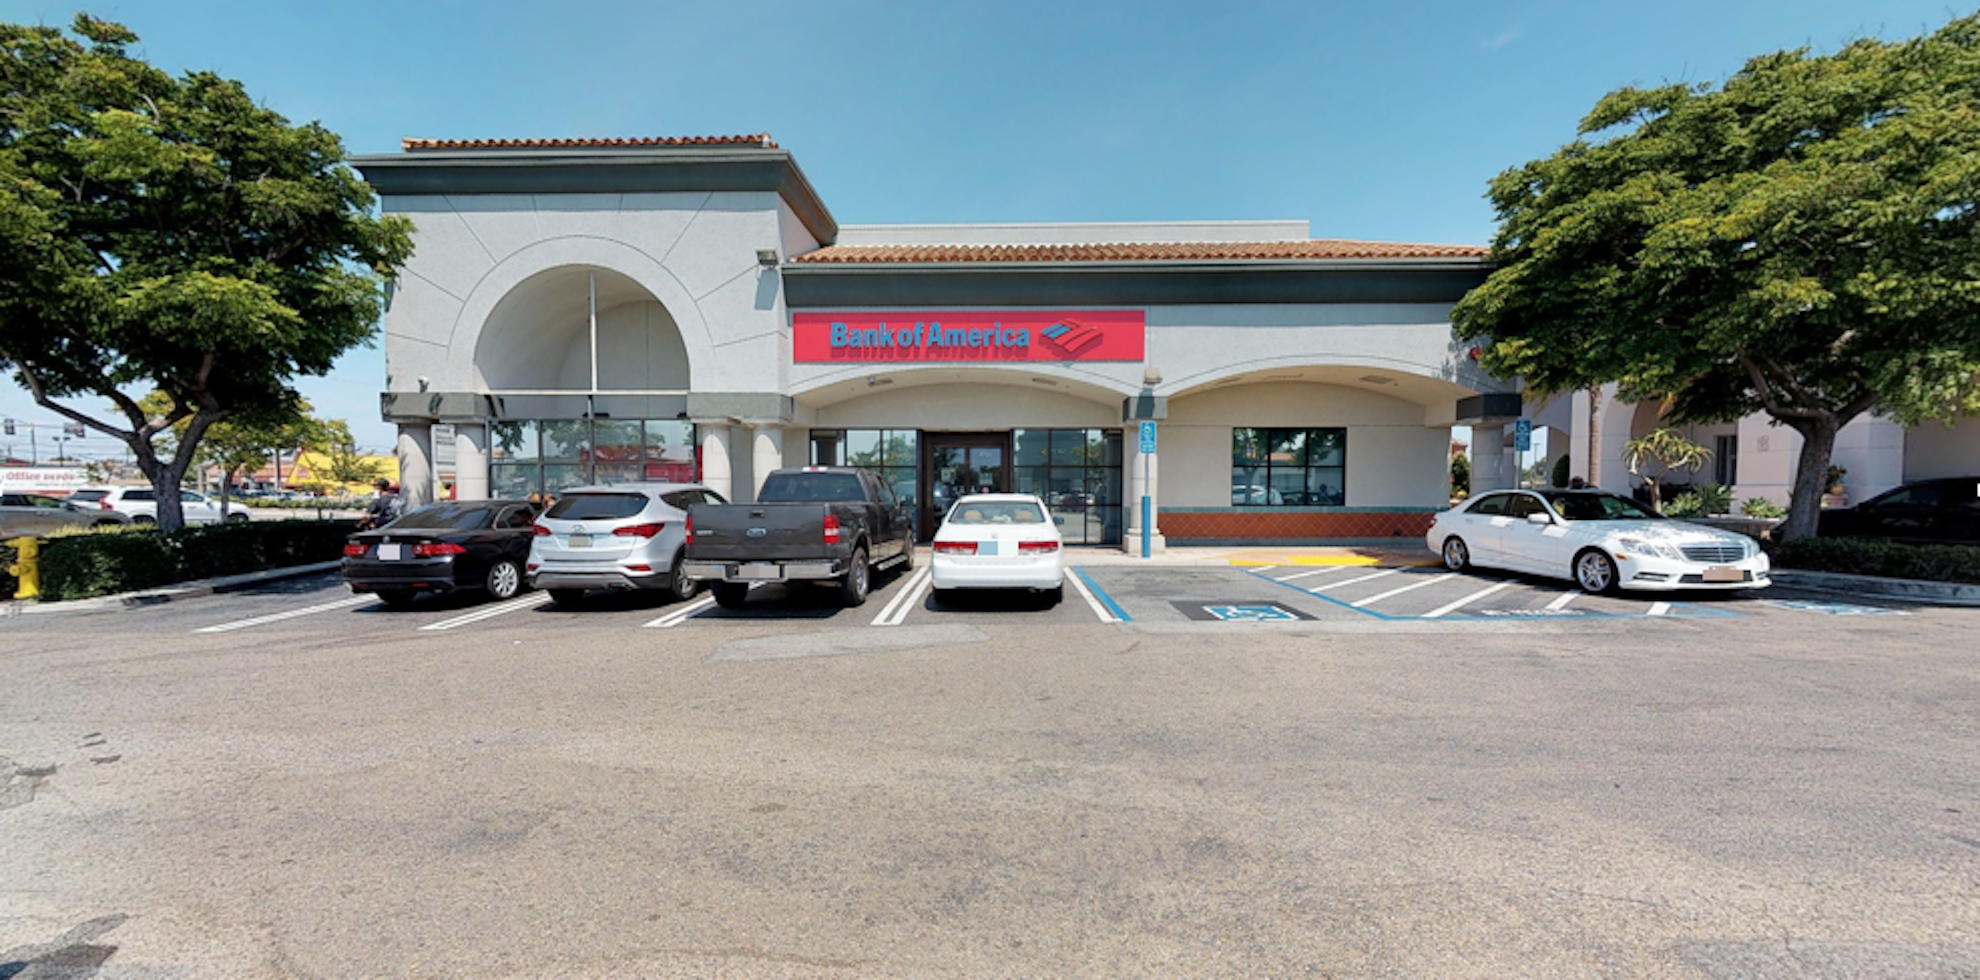 Bank of America financial center with walk-up ATM   6791 Westminster Blvd, Westminster, CA 92683